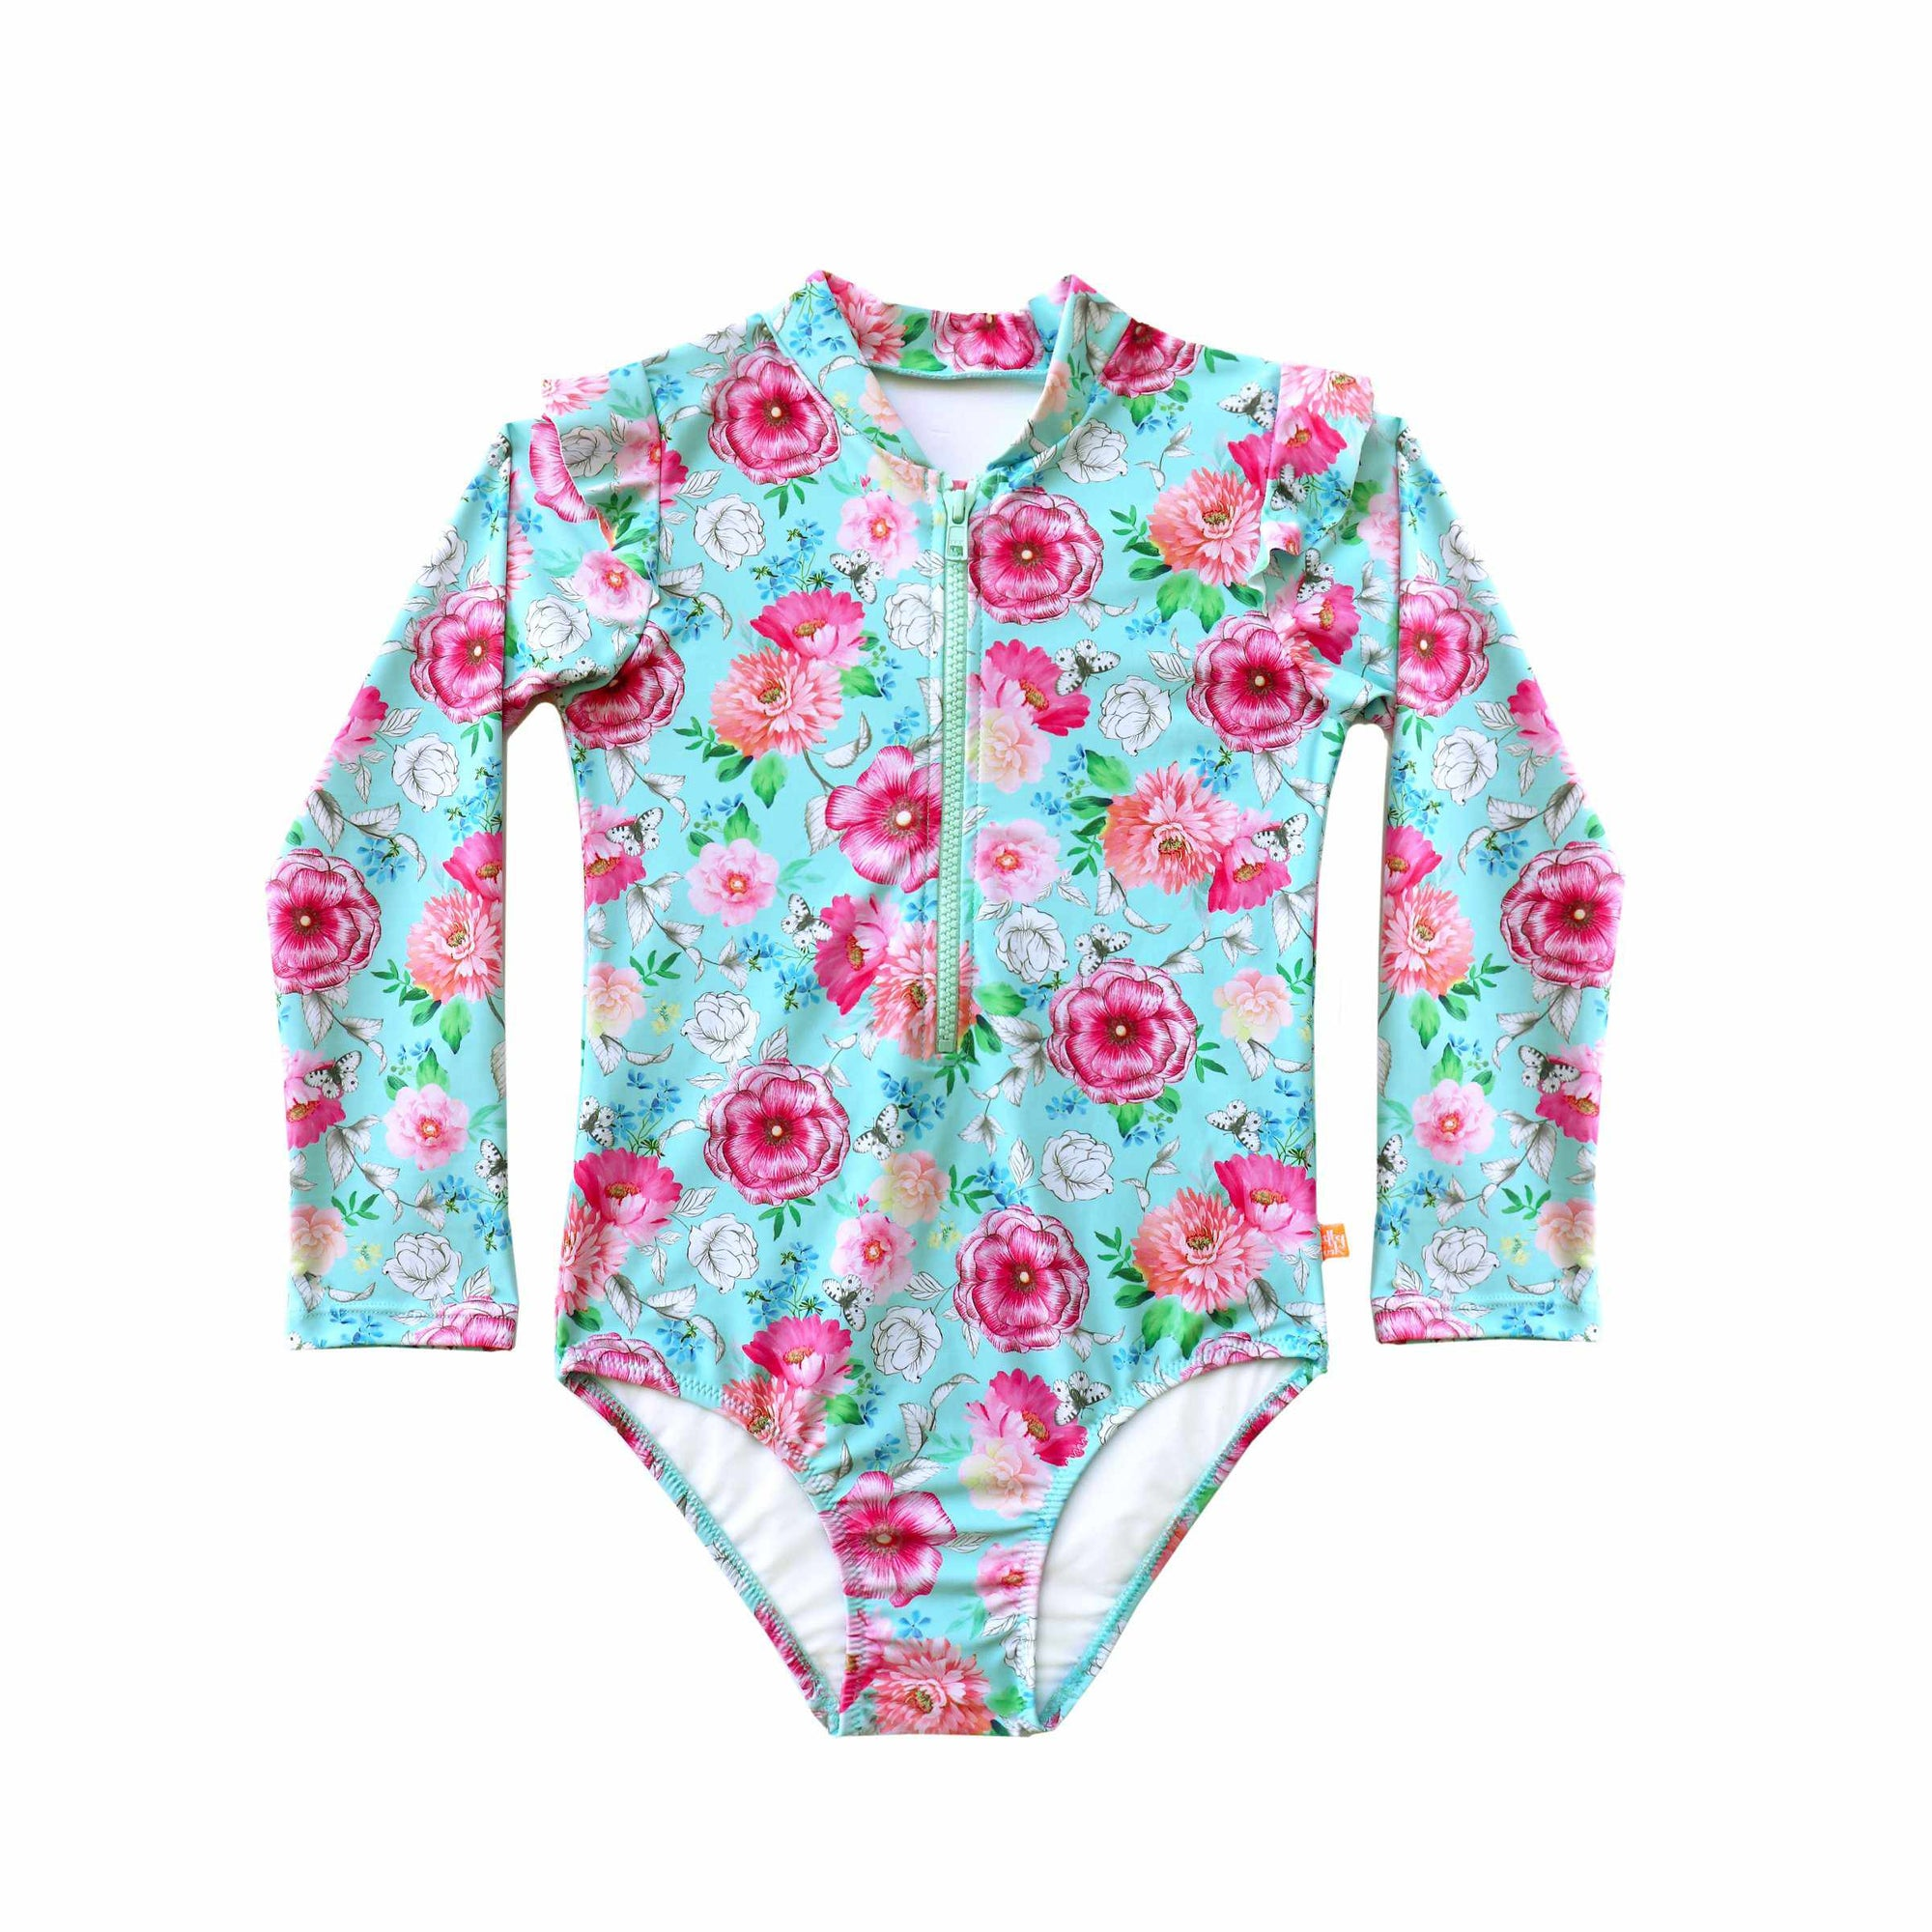 Salty Ink Little Girls Sunsuit - Miss Poppy Mint